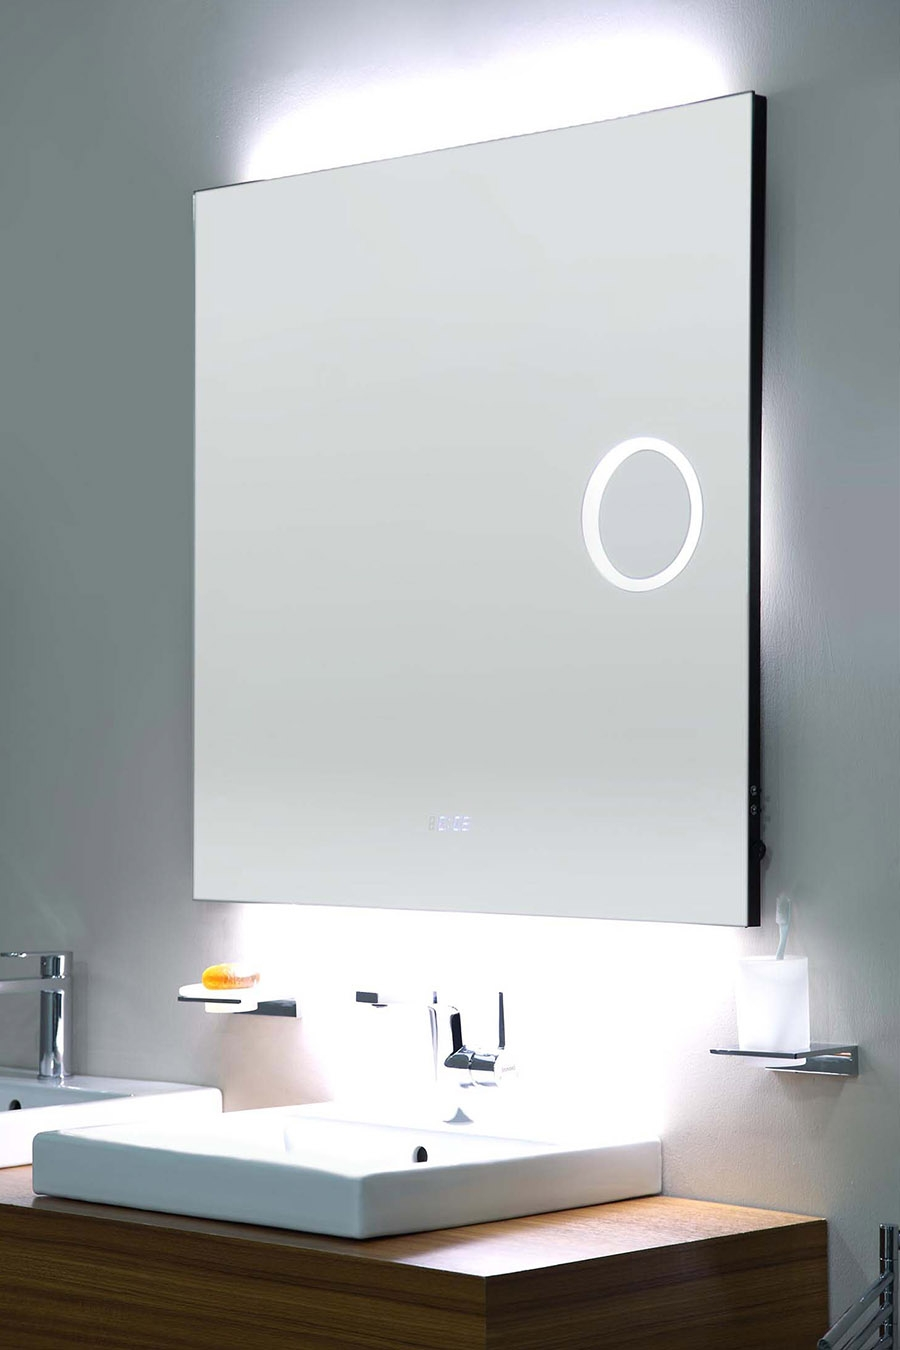 Illuminated Bathroom Mirror With Magnifier